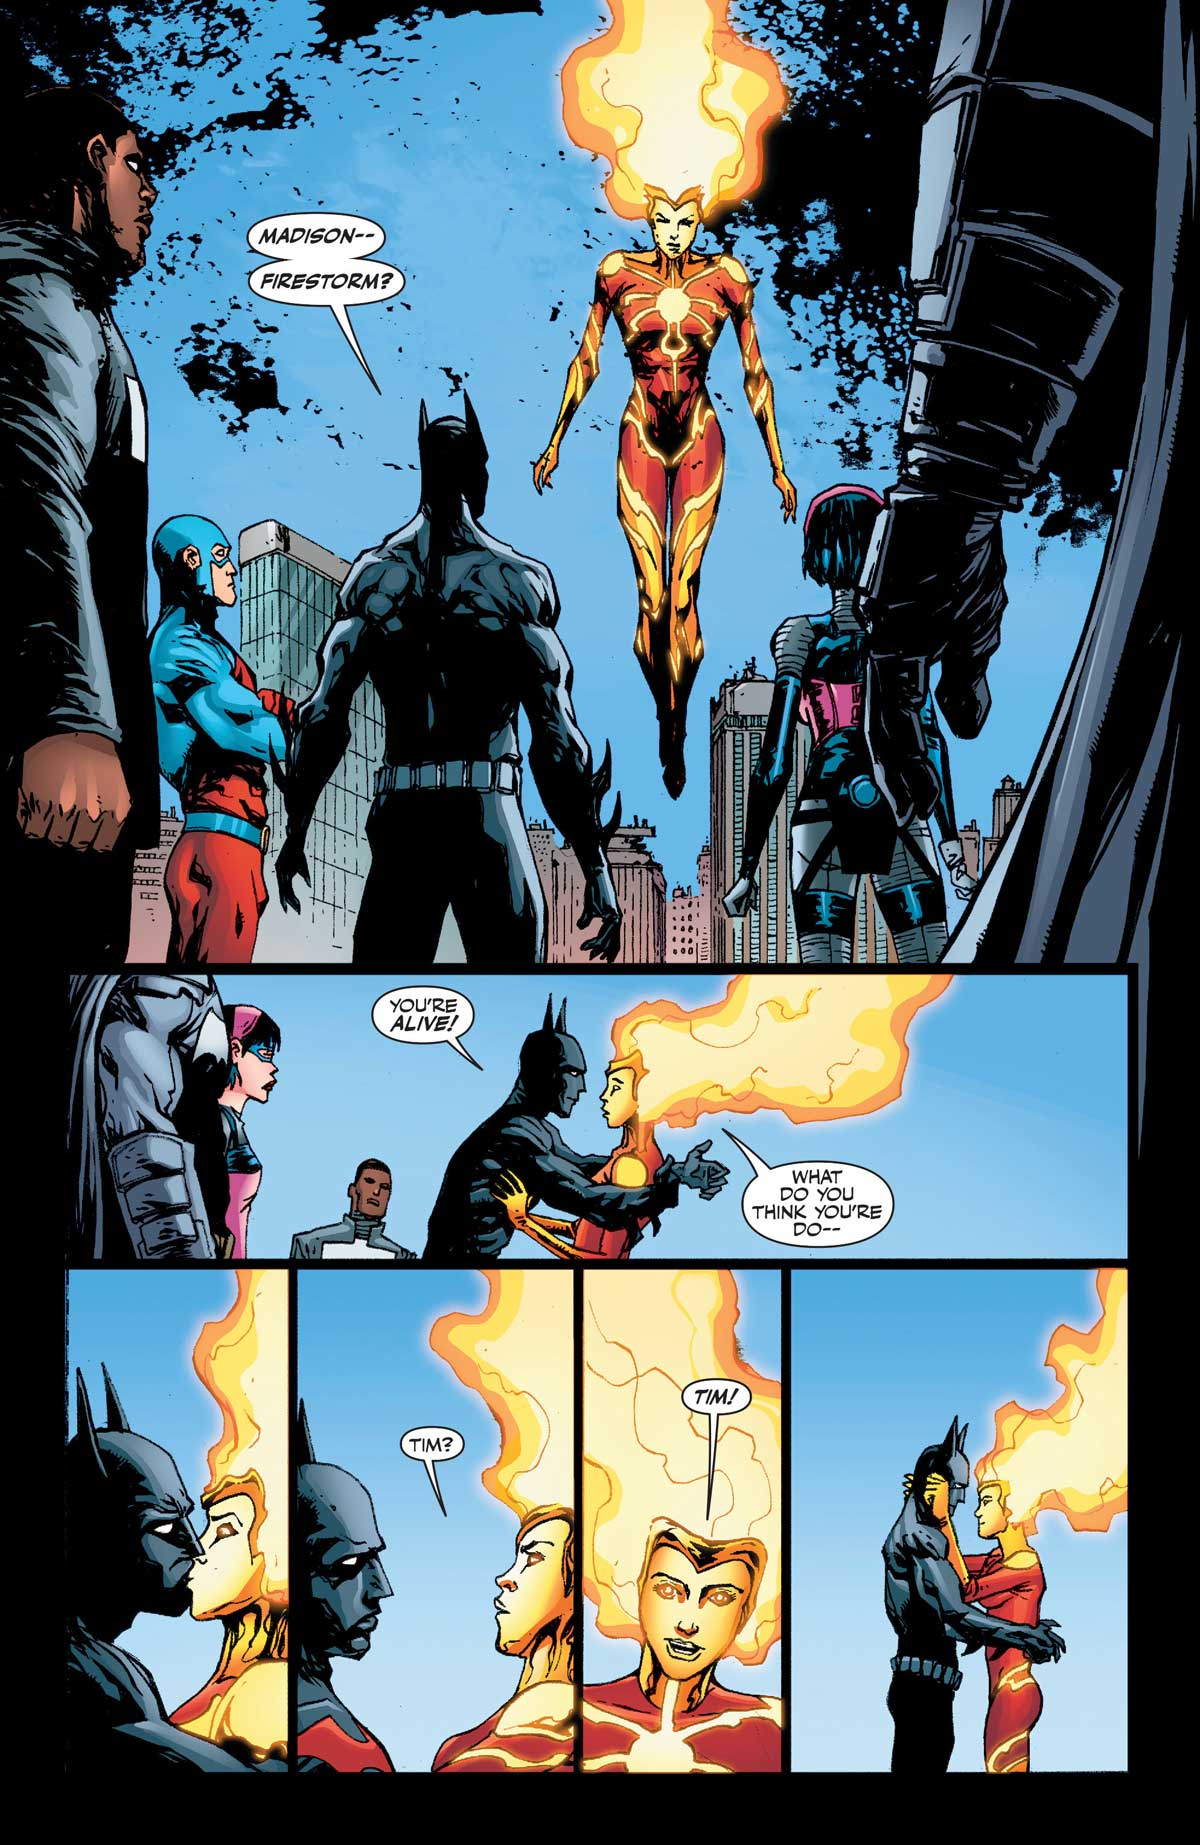 New 52 Futures End #47